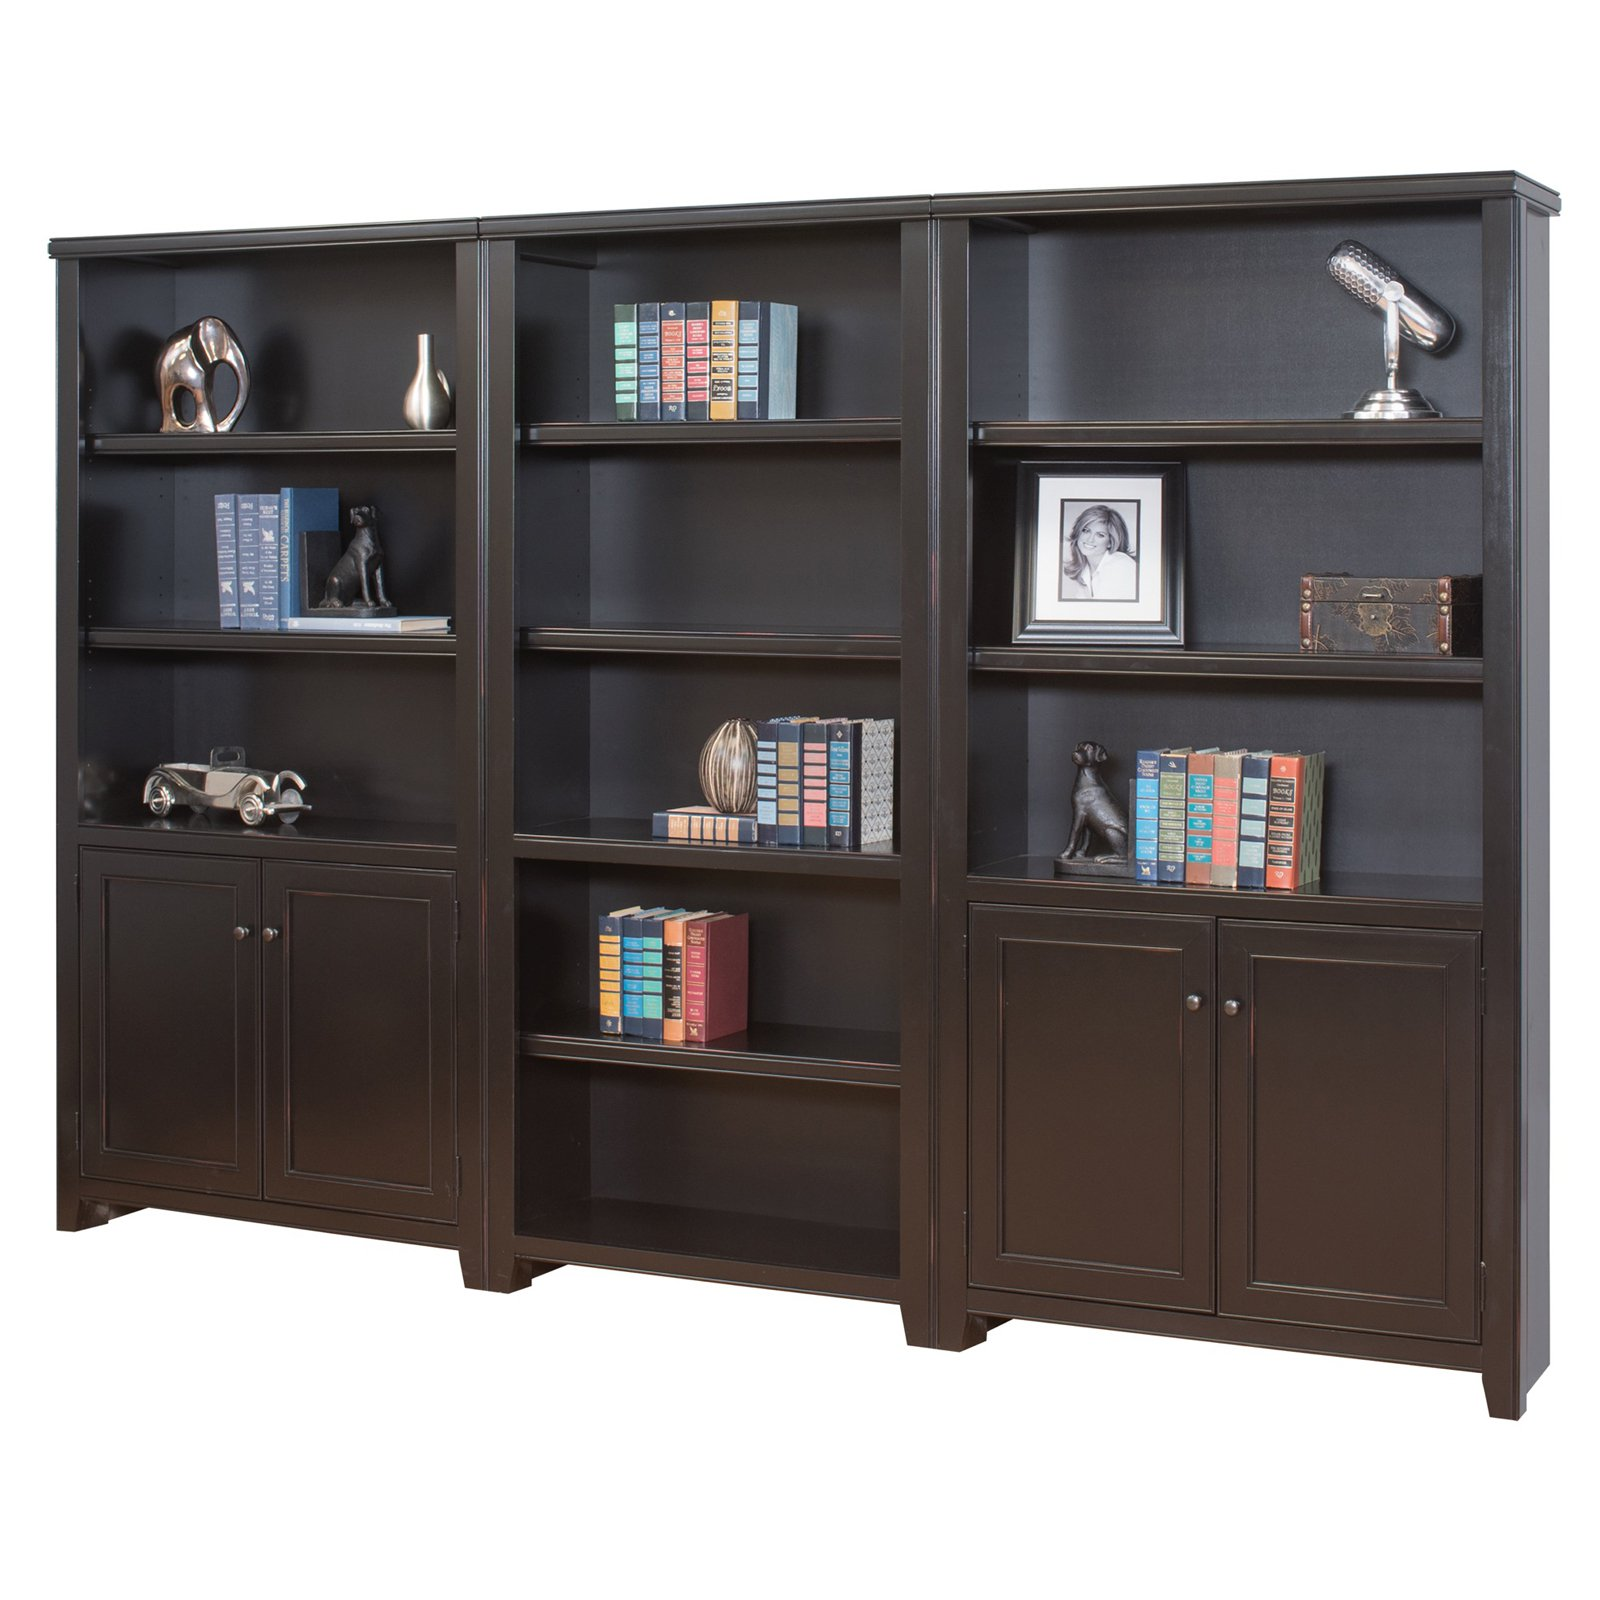 Martin Furniture Tribeca Loft Wood Wall Bookcase with 2 Doors - Black